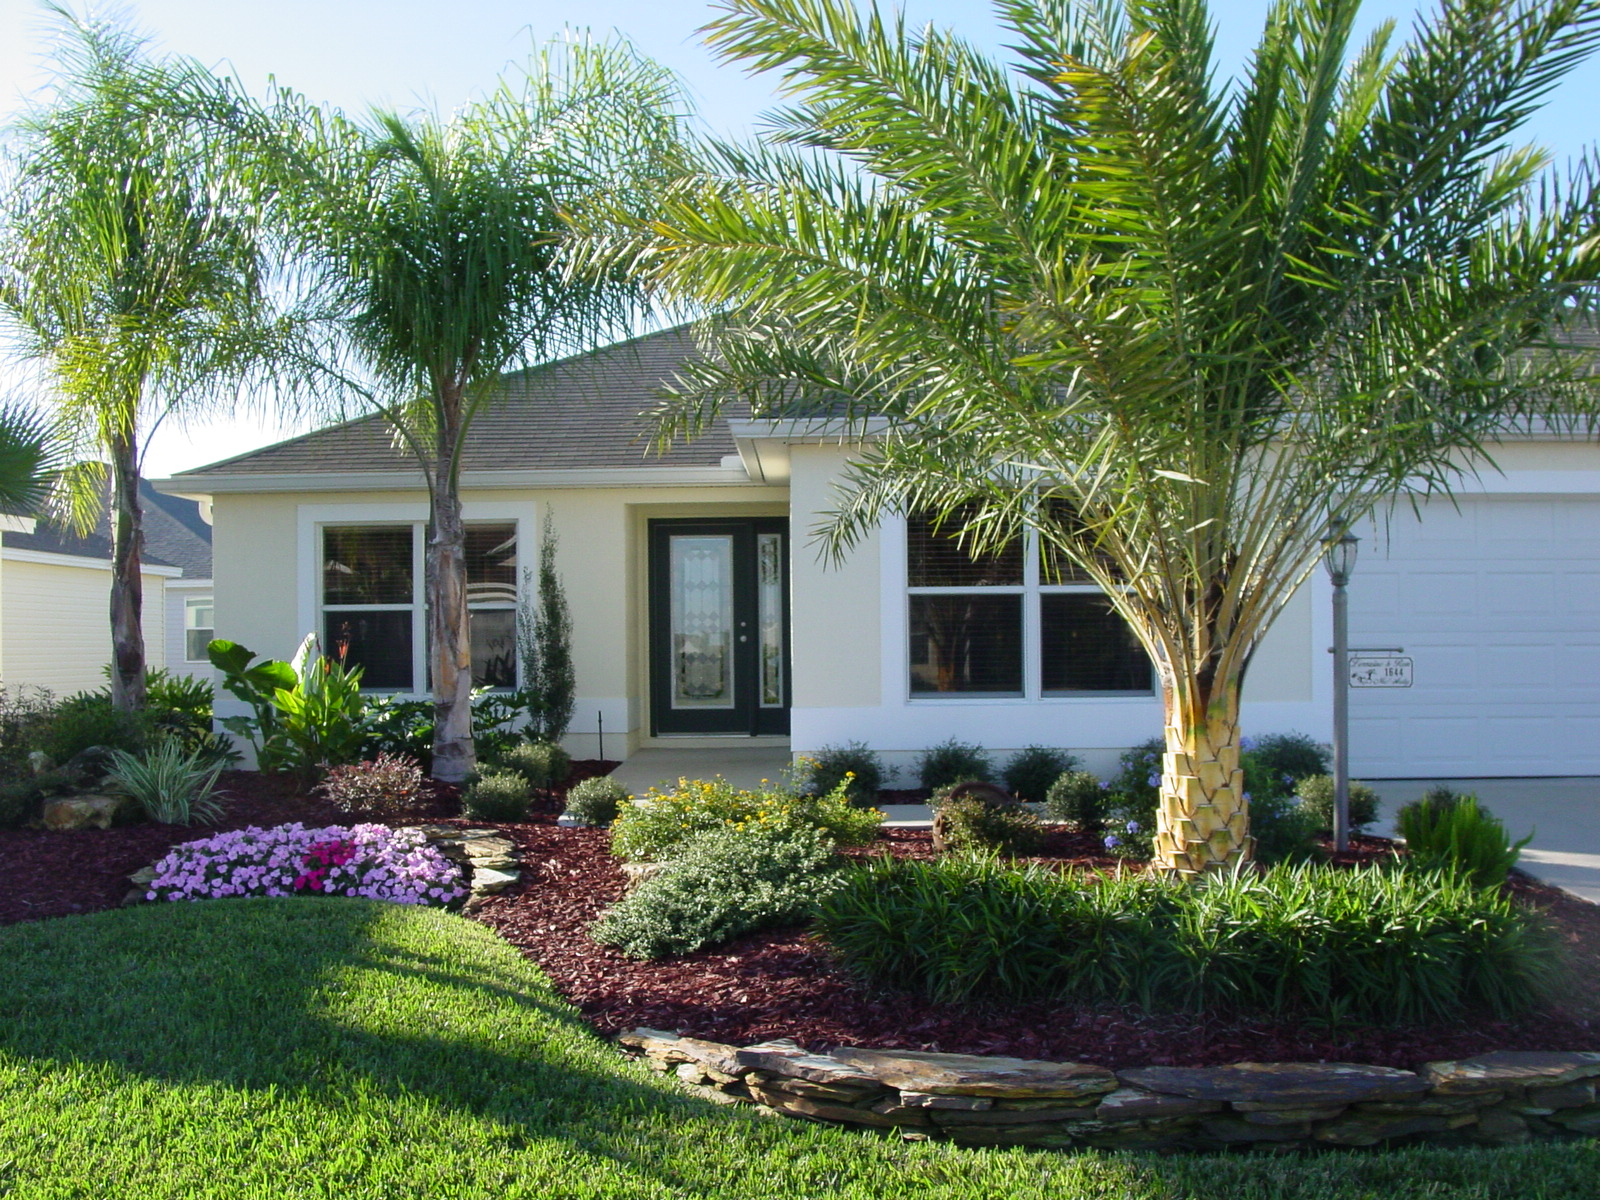 Landscaping Landscaping Ideas In South Florida